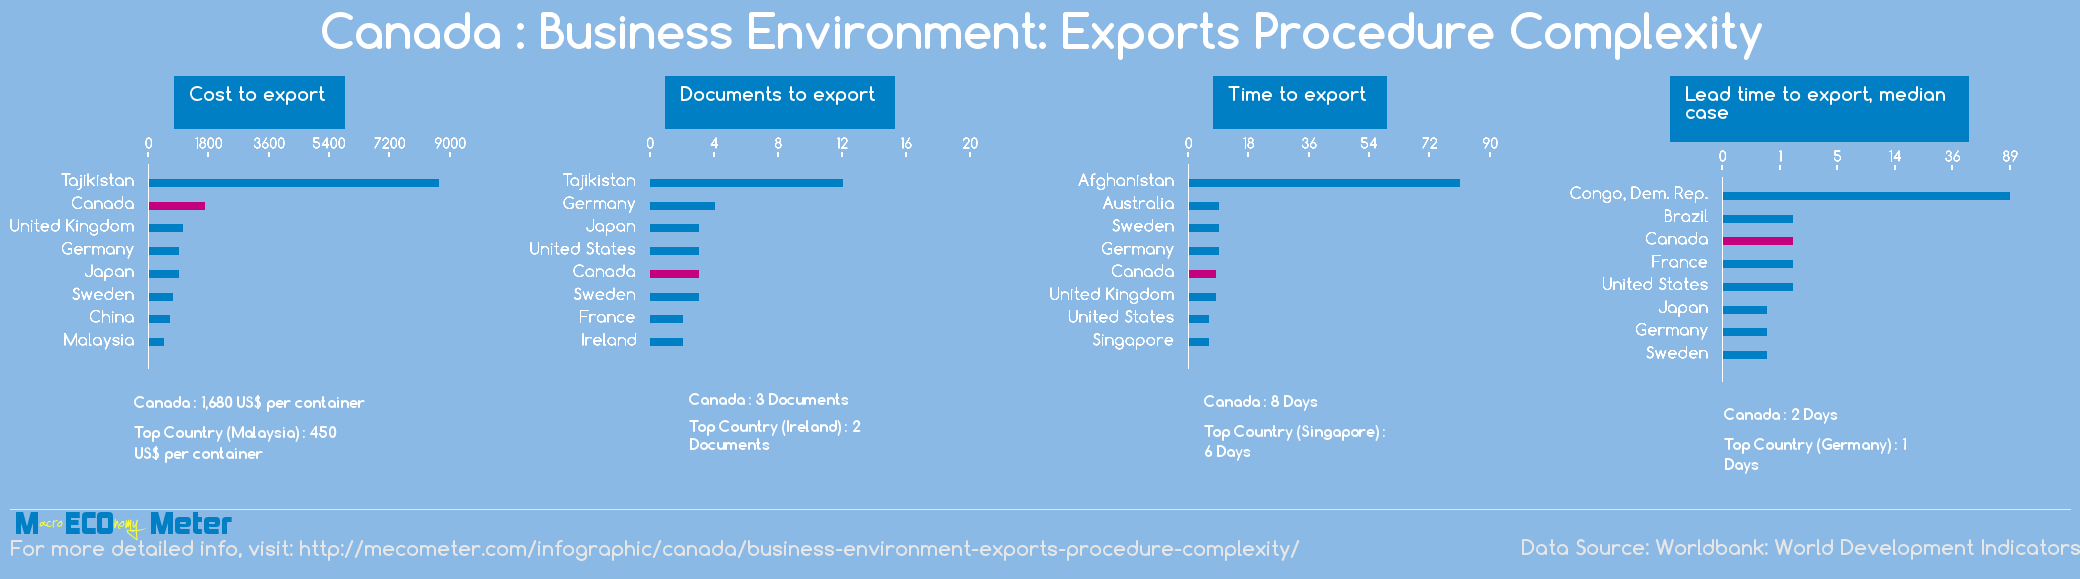 Canada : Business Environment: Exports Procedure Complexity